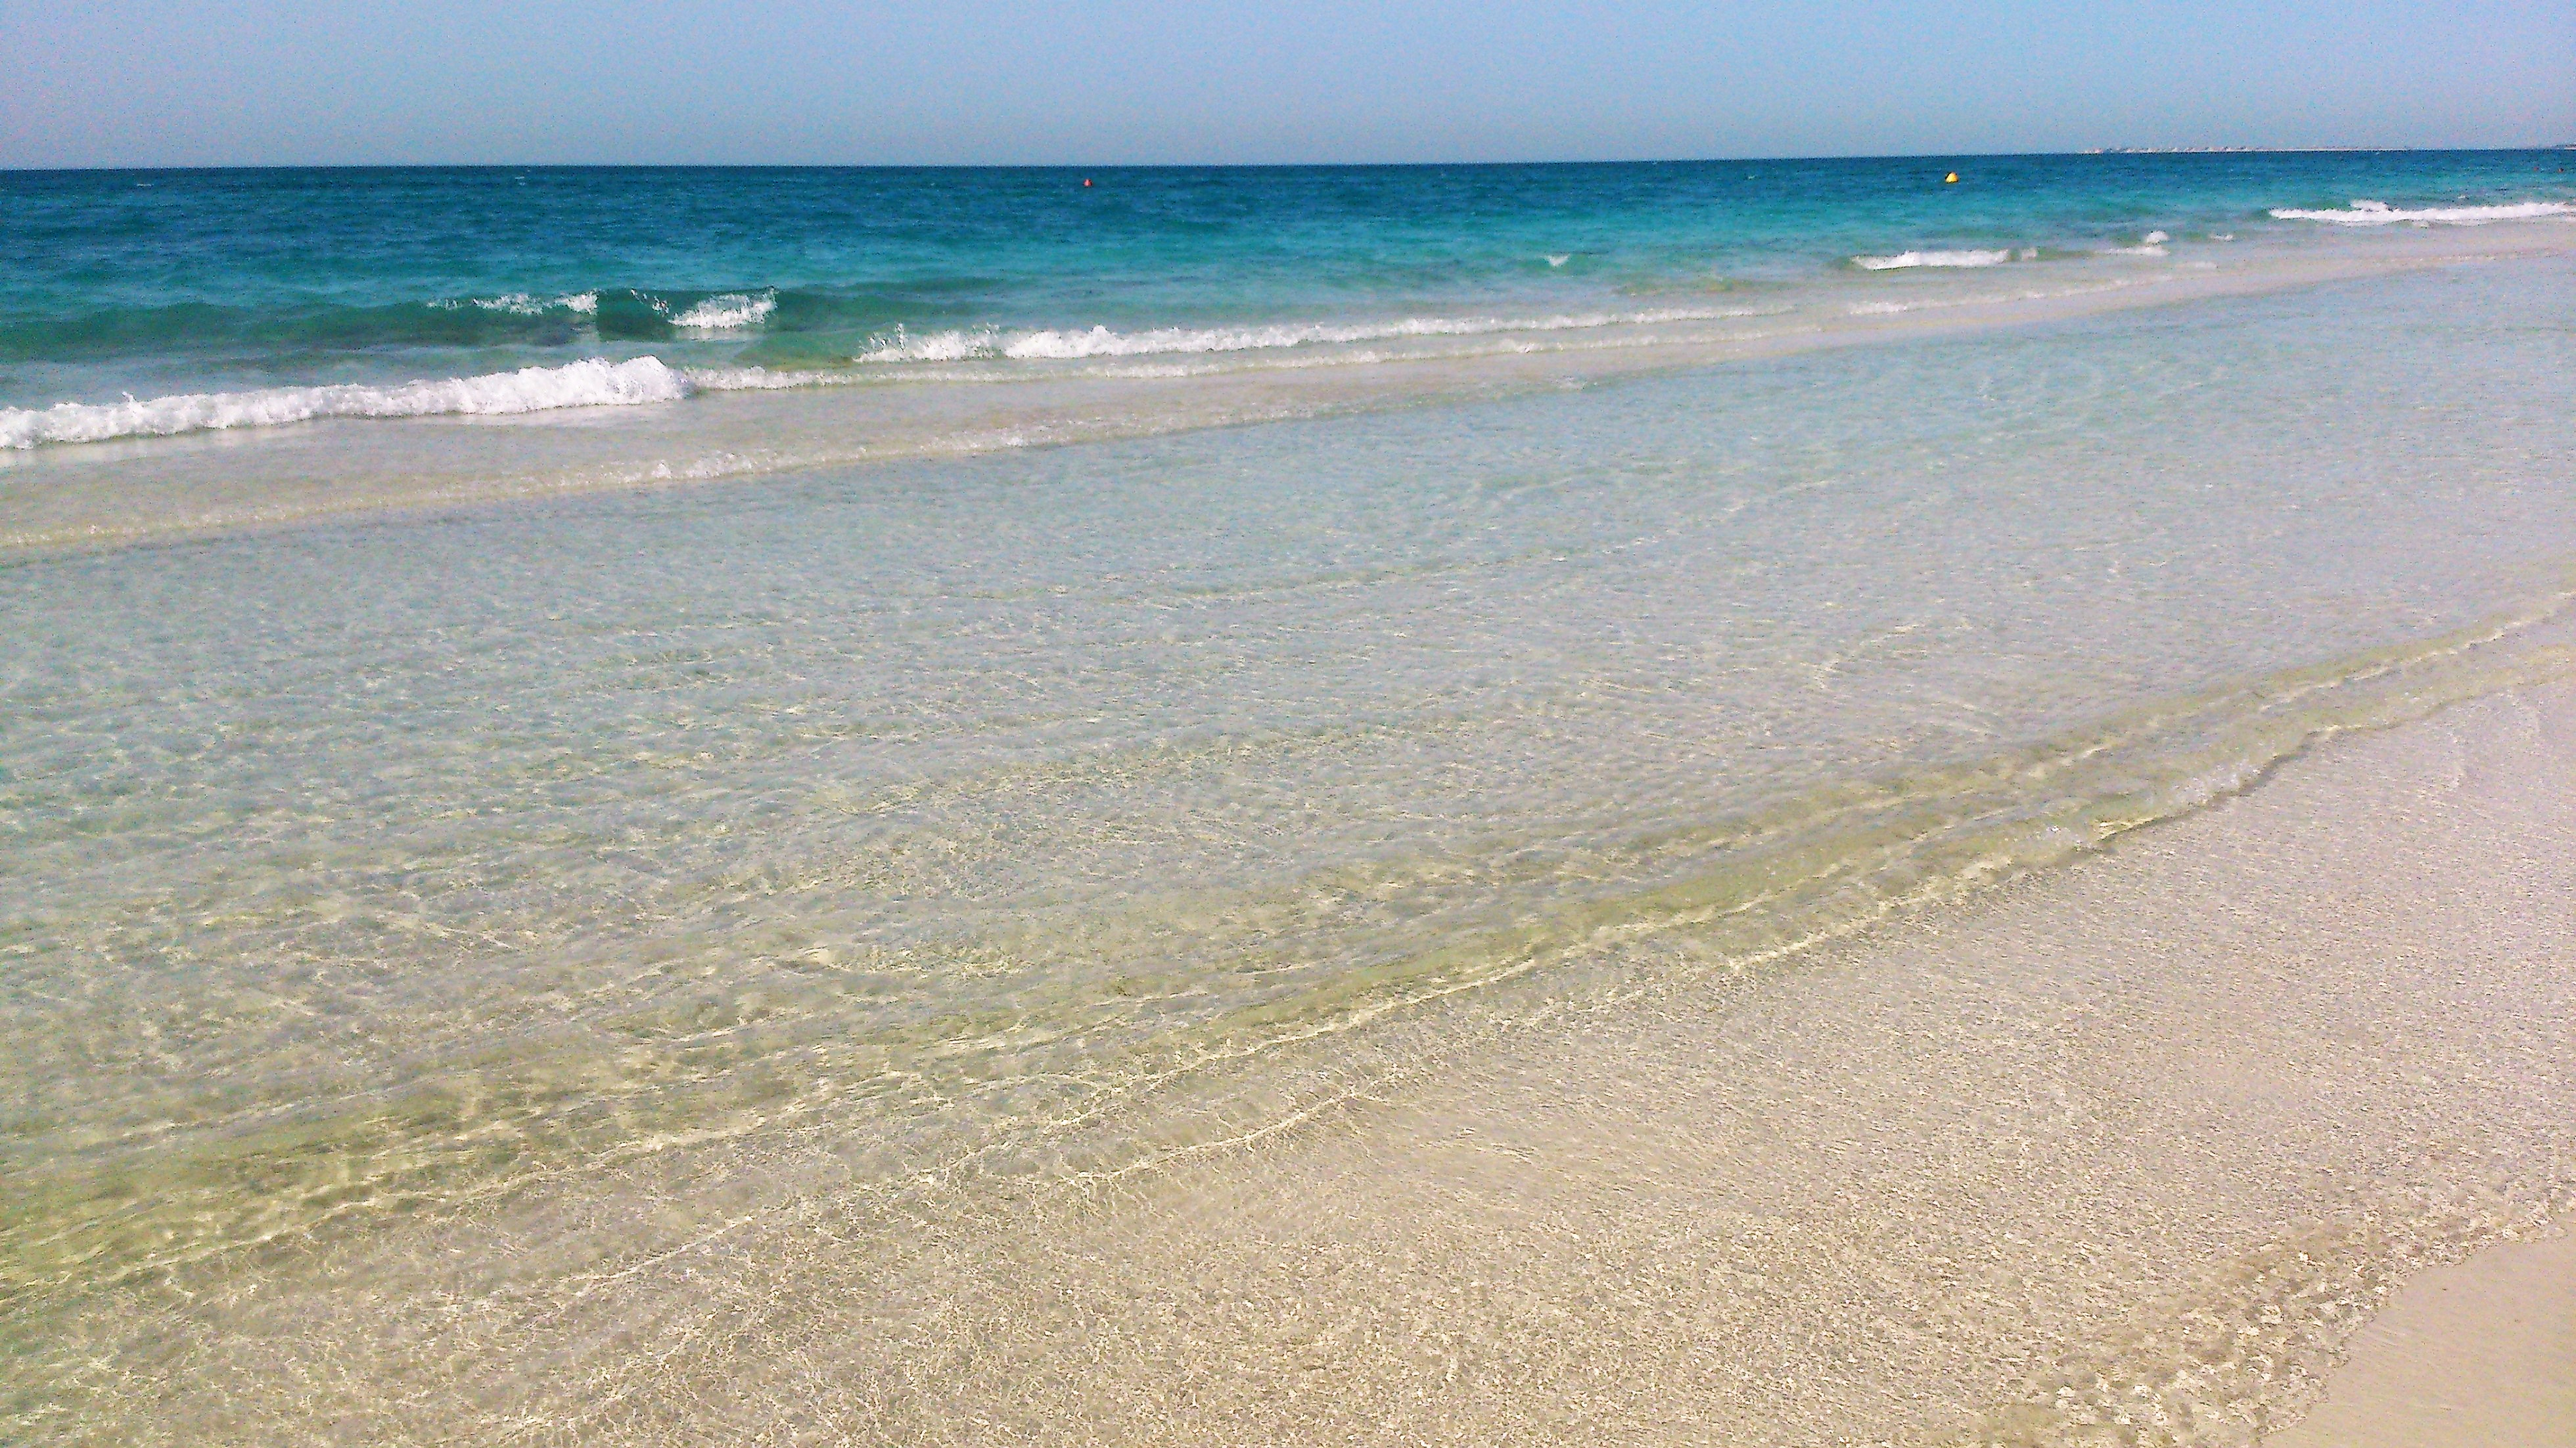 cristal-clear-water-at-saadiyat-beach